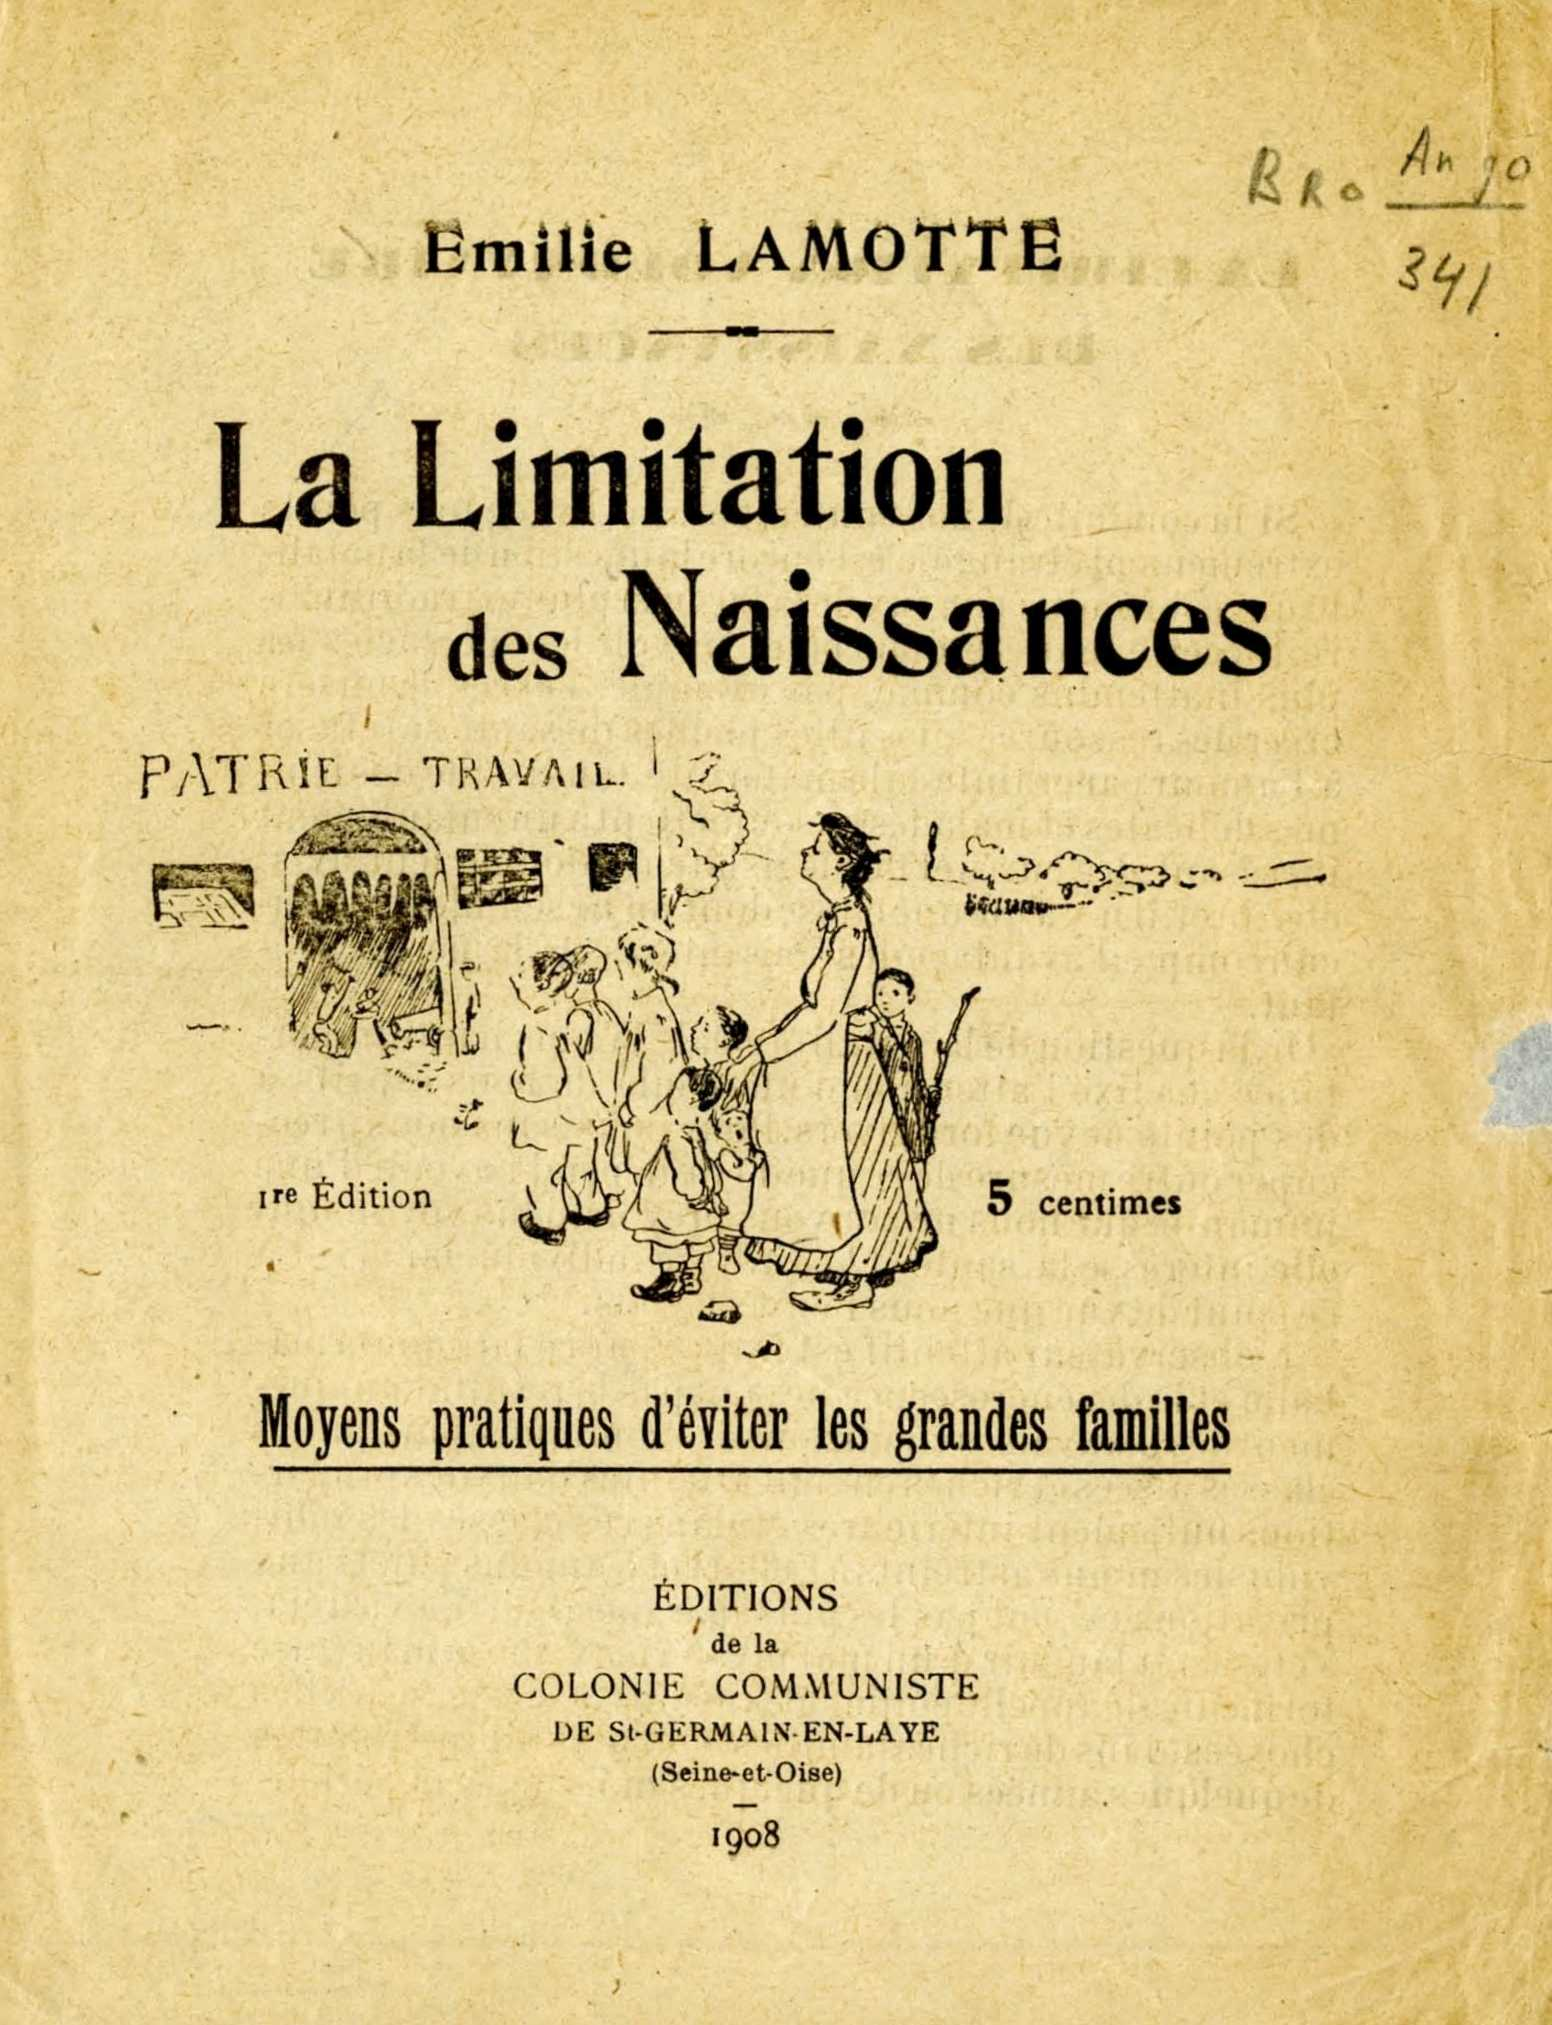 Folleto de Émilie Lamotte conservado en el International Institute of Social History de Amsterdam